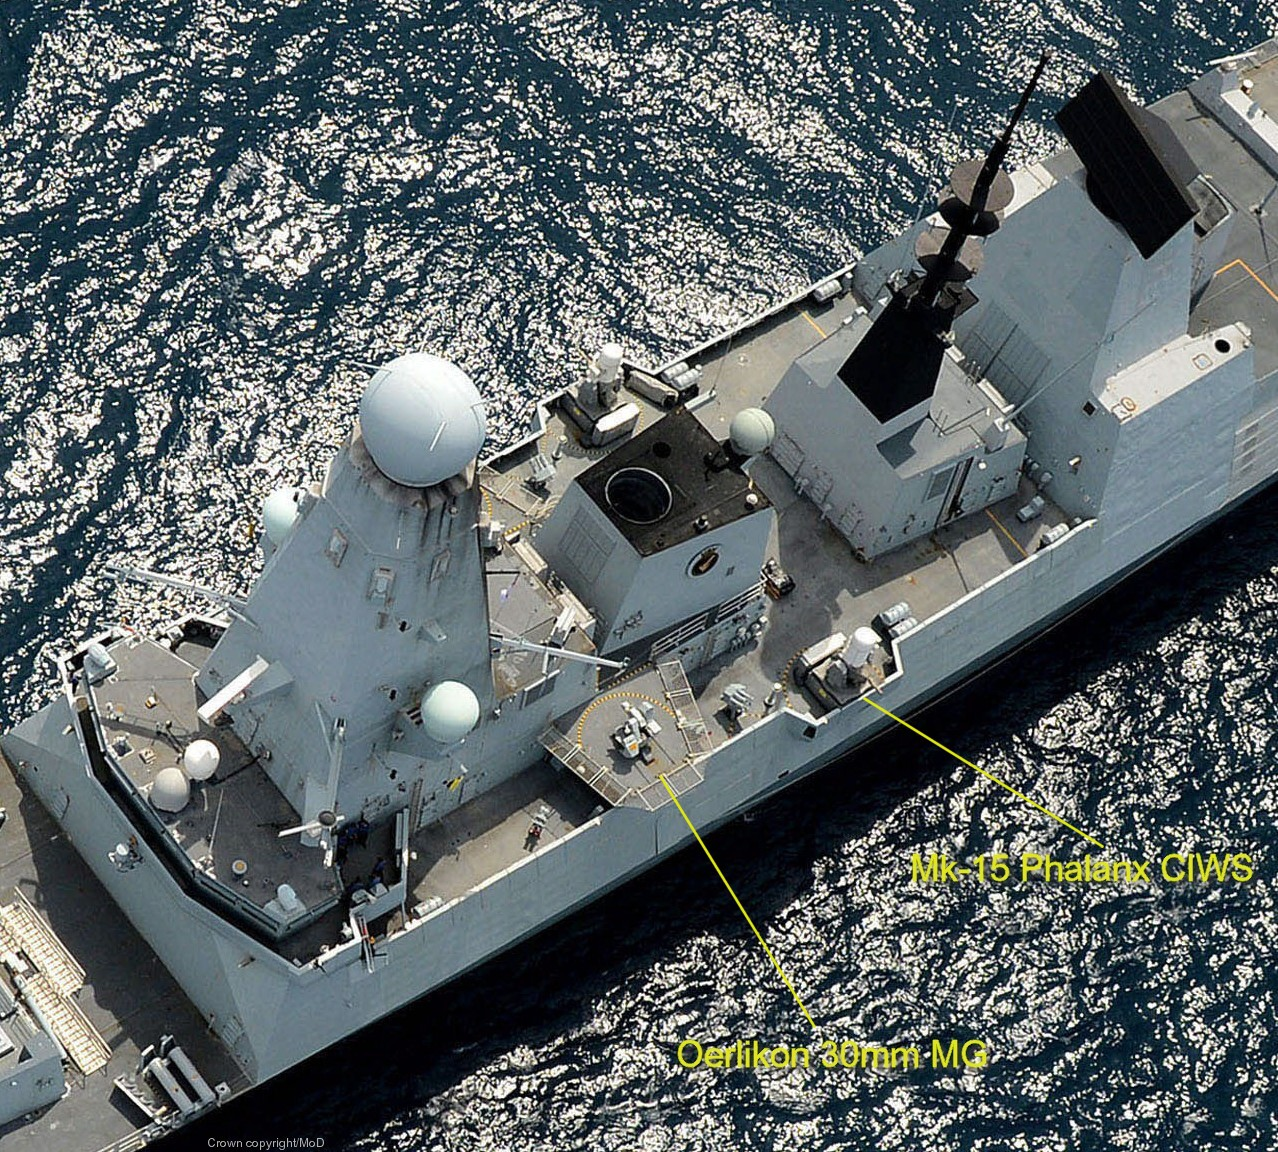 type 45 daring class destroyer oerlikon 30mm machine gun mk-15 phalanx ciws